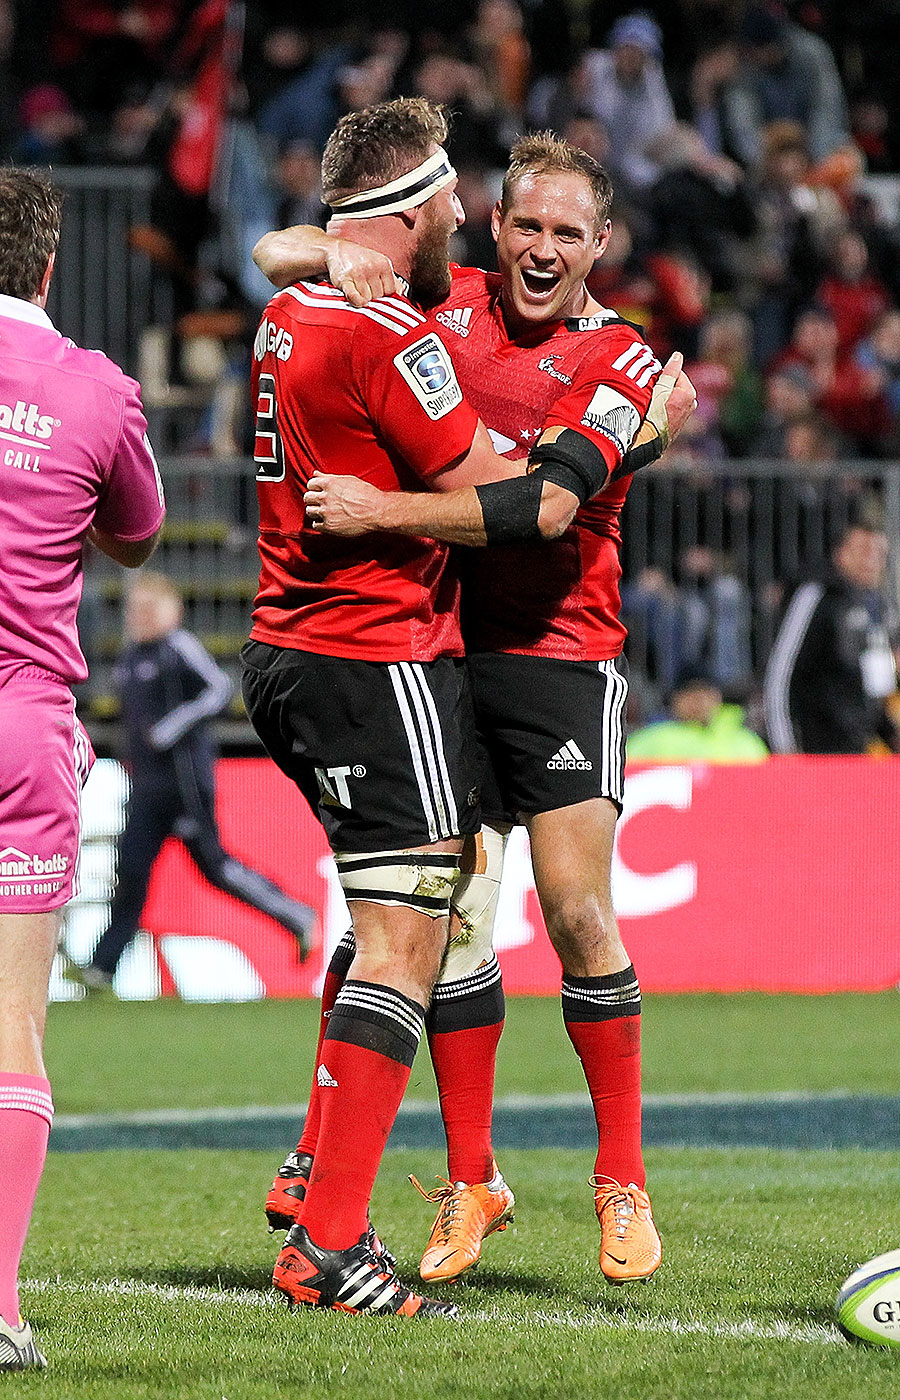 The Crusaders' Kieran Read and Andy Ellis celebrate the back-rower's try